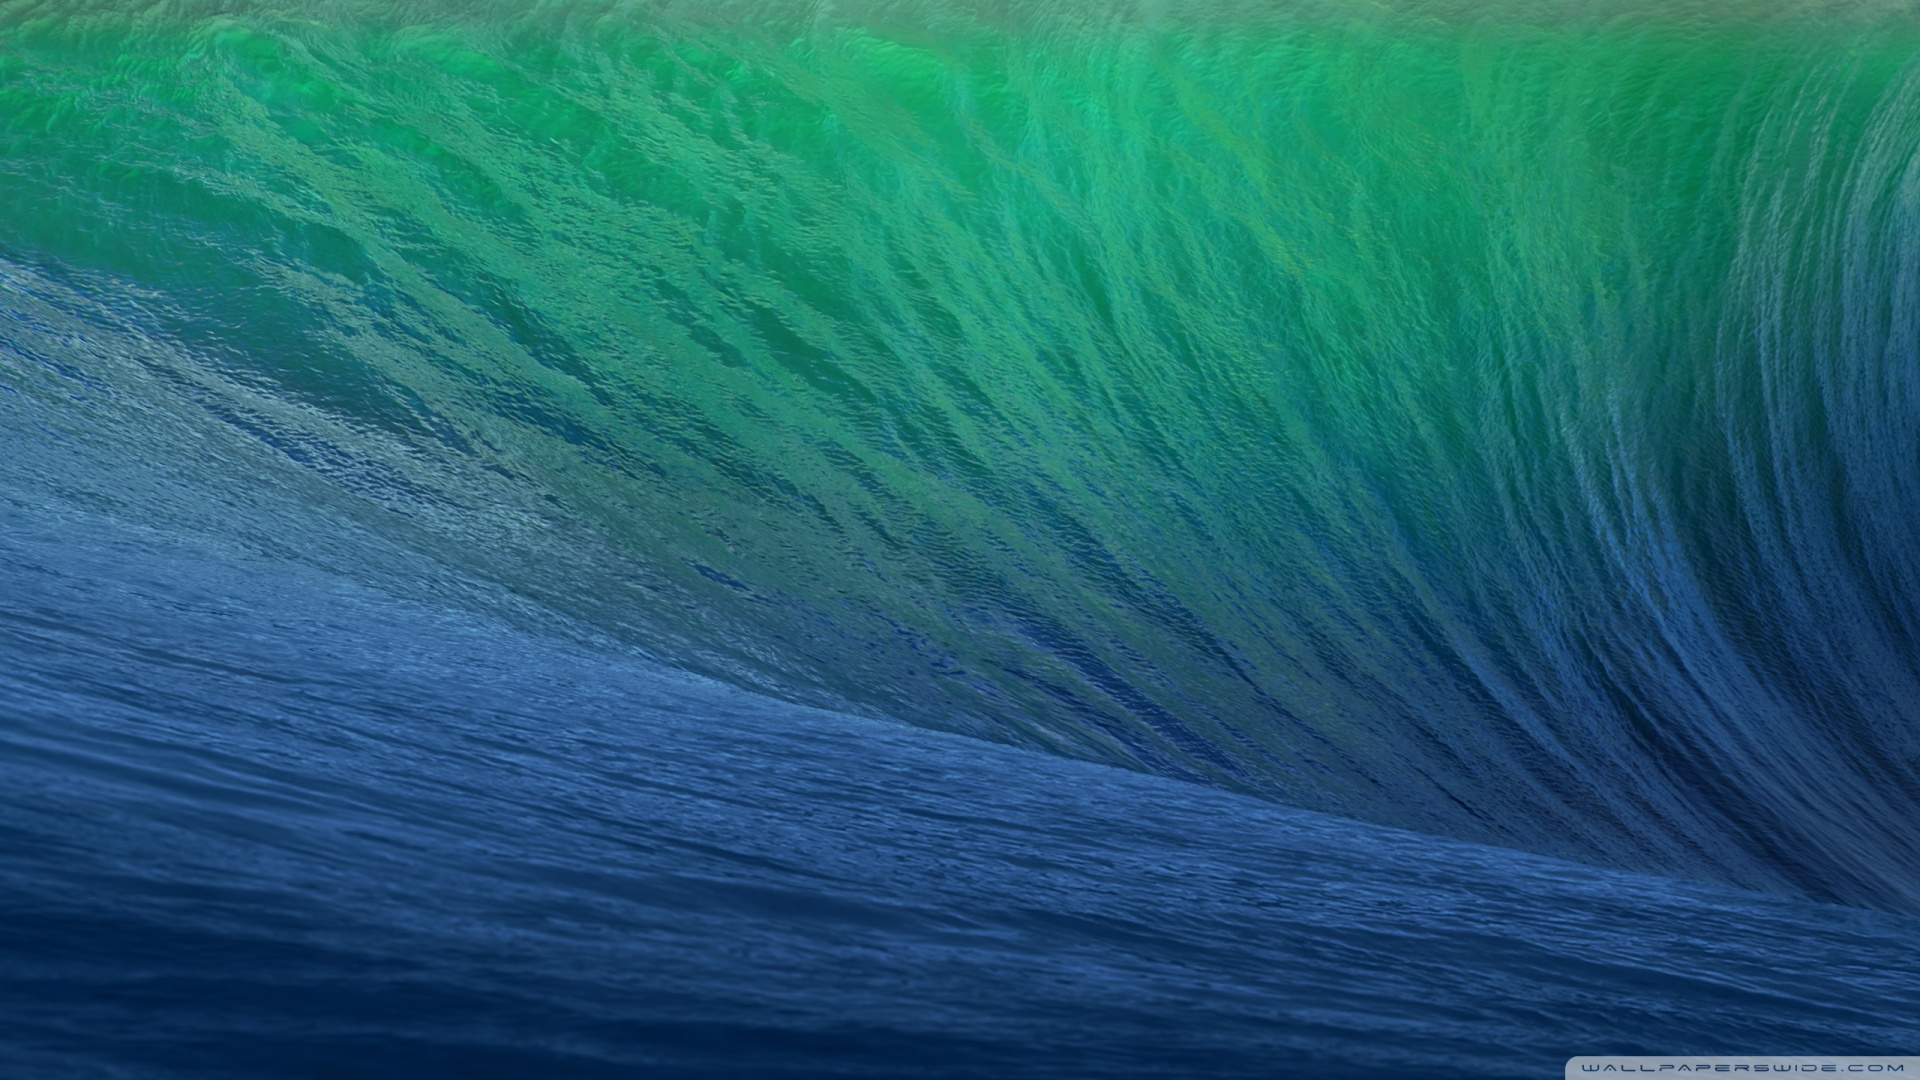 Mac Osx Wallpaper